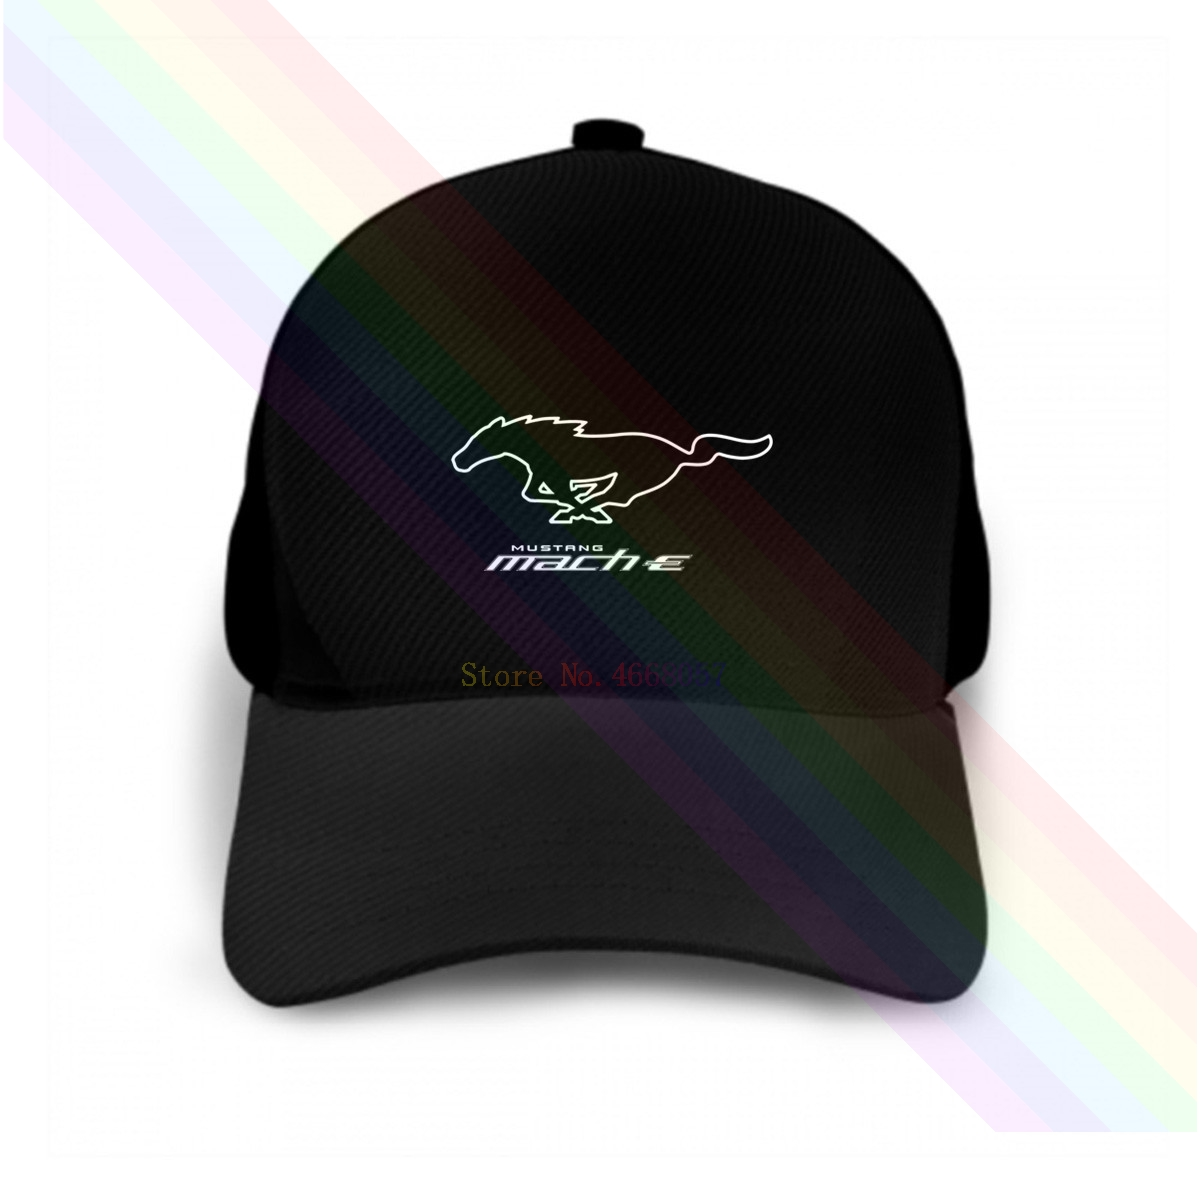 Imported From Abroad Ford Mustang Mach-e Logo Motor Classic 2020 Newest Black Popular Baseball Cap Hats Unisex